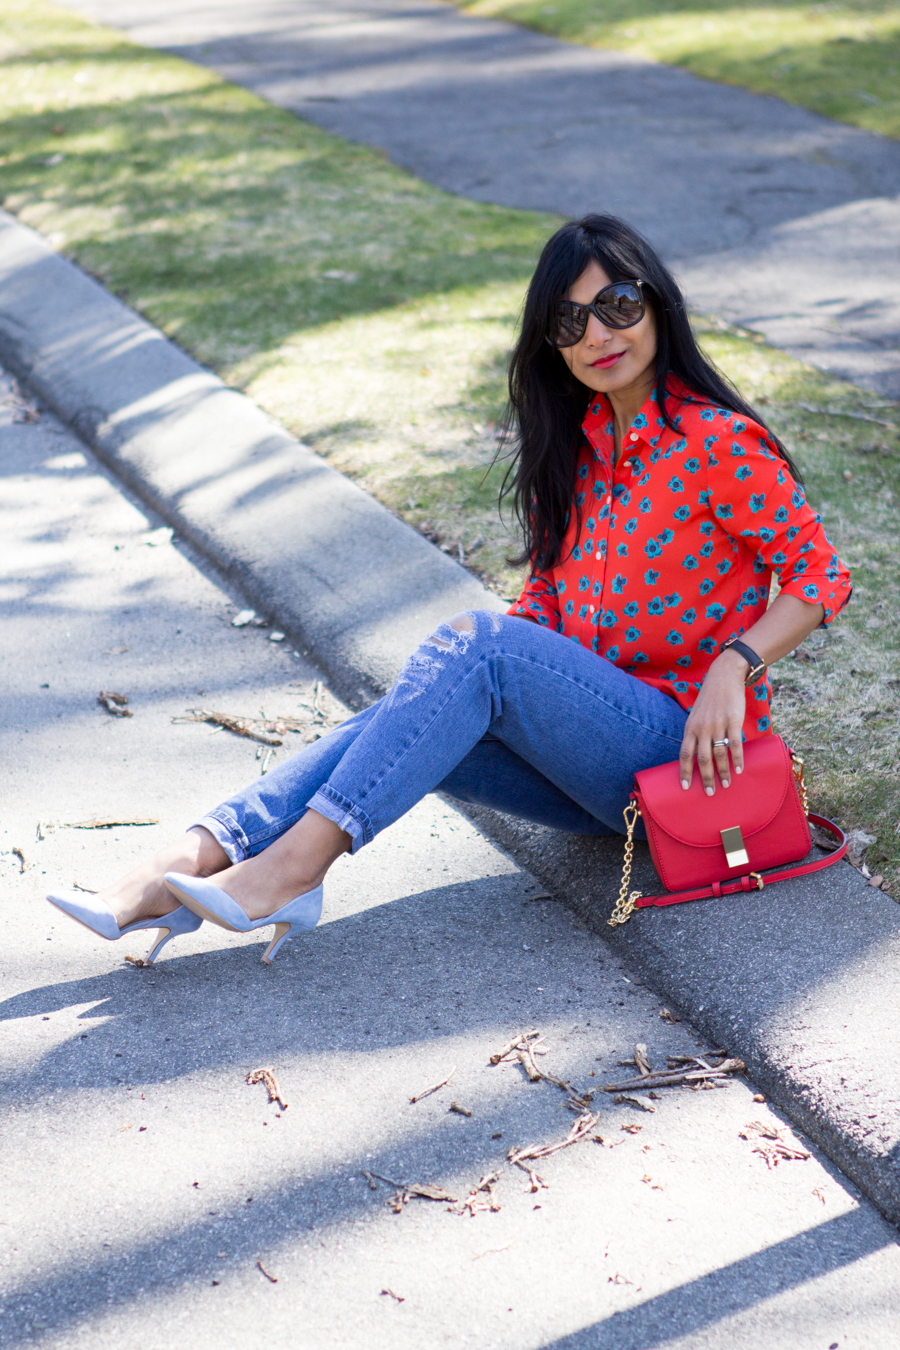 street style, spring colors, spring outfit, bright colors, saturated colors, spring style, colorblocking, lipstick red, tomato red, periwinkle blue, pastel blue, crossbody bag